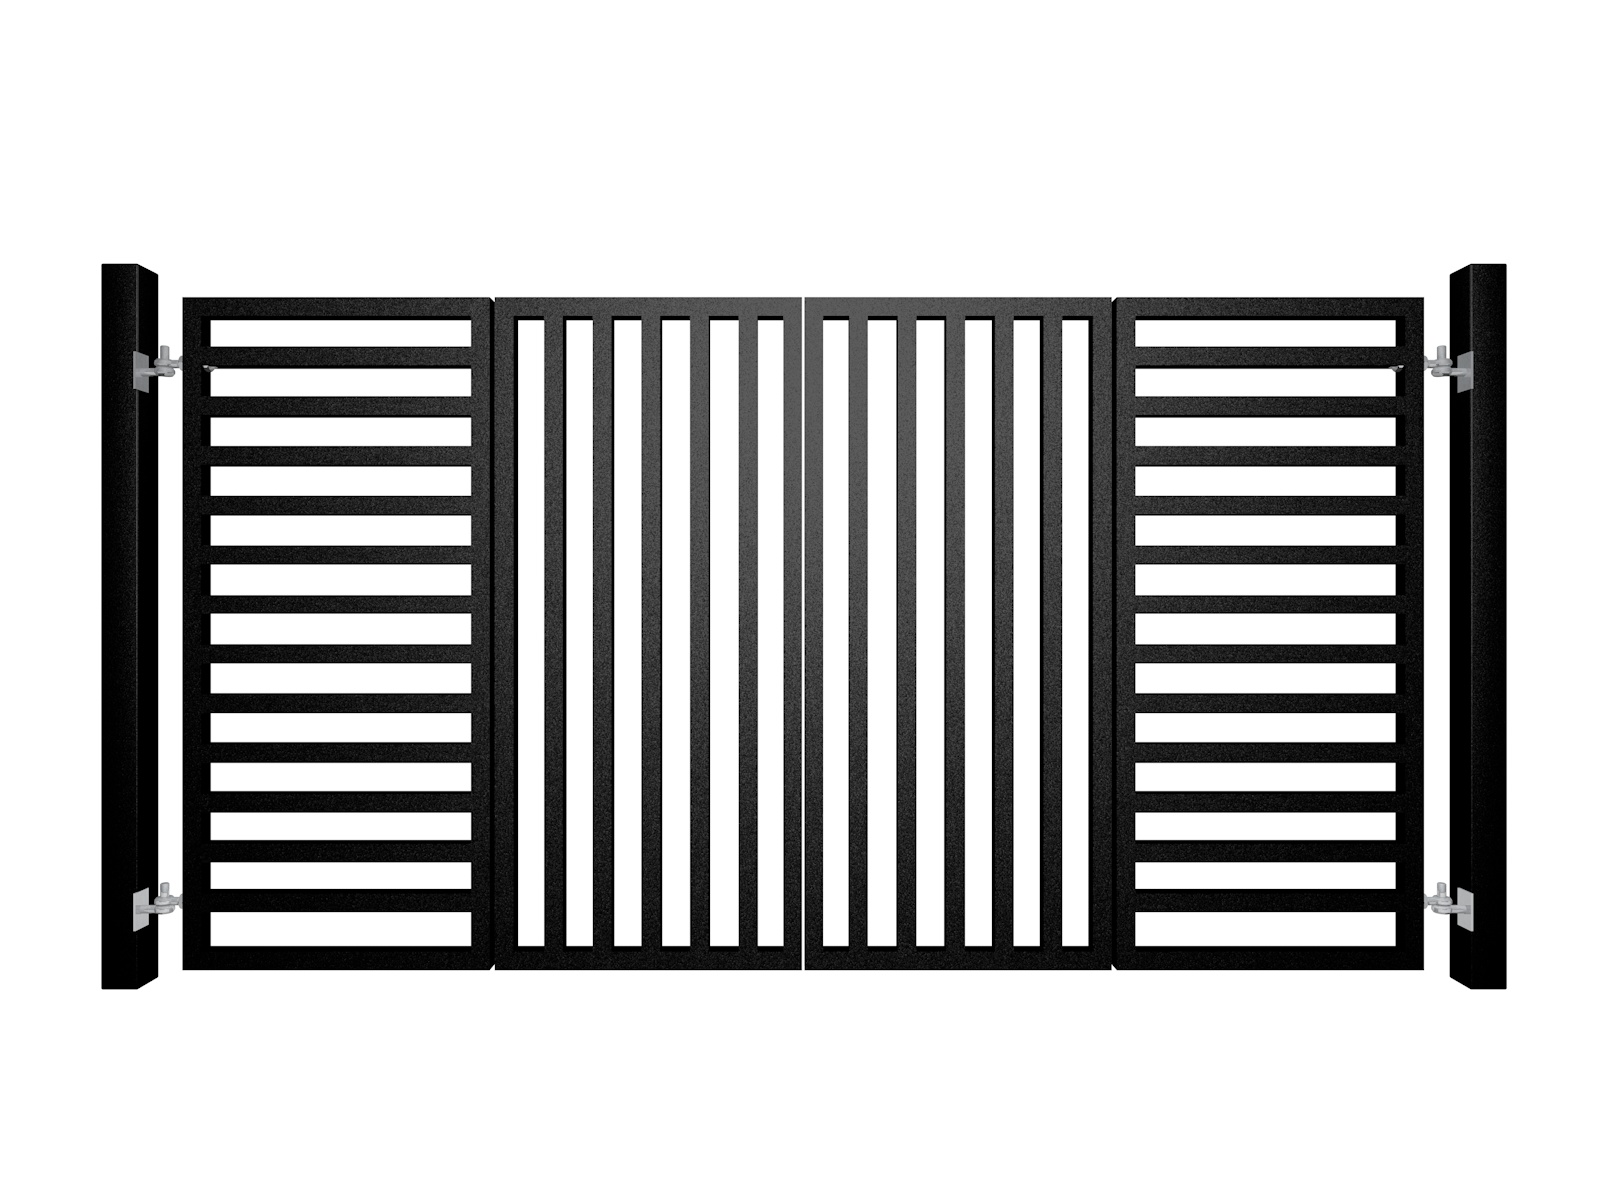 contemporary bi-fold automated metal gate with square section fill bars